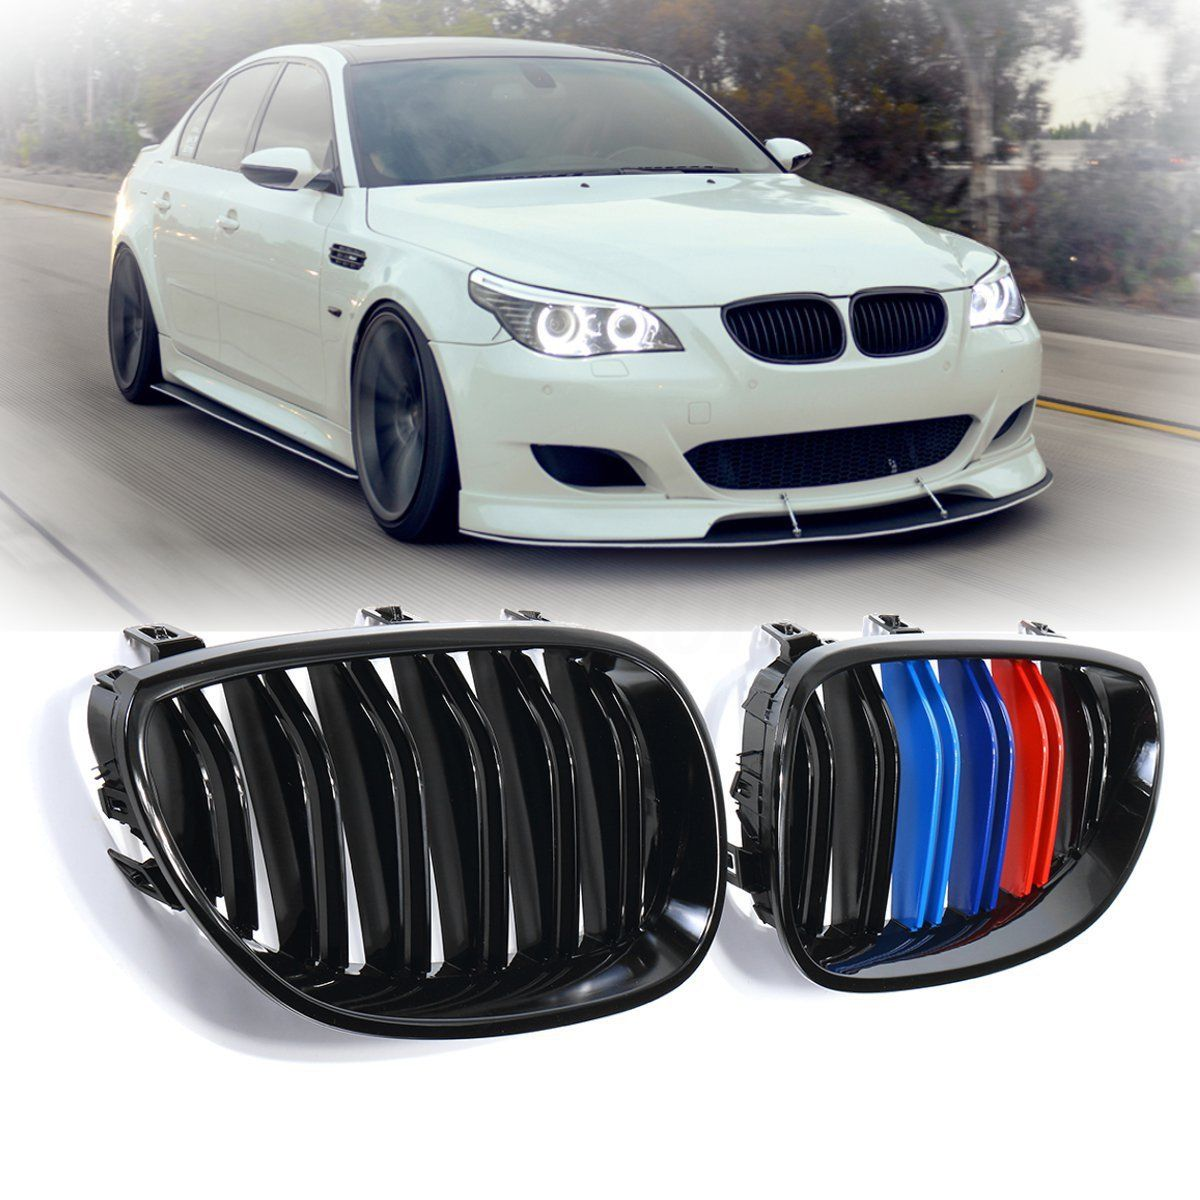 Gloss Black M-Color Front Kidney Grill Grille for 2003-2010 <font><b>BMW</b></font> <font><b>E60</b></font> E61 <font><b>5</b></font> <font><b>Series</b></font> image